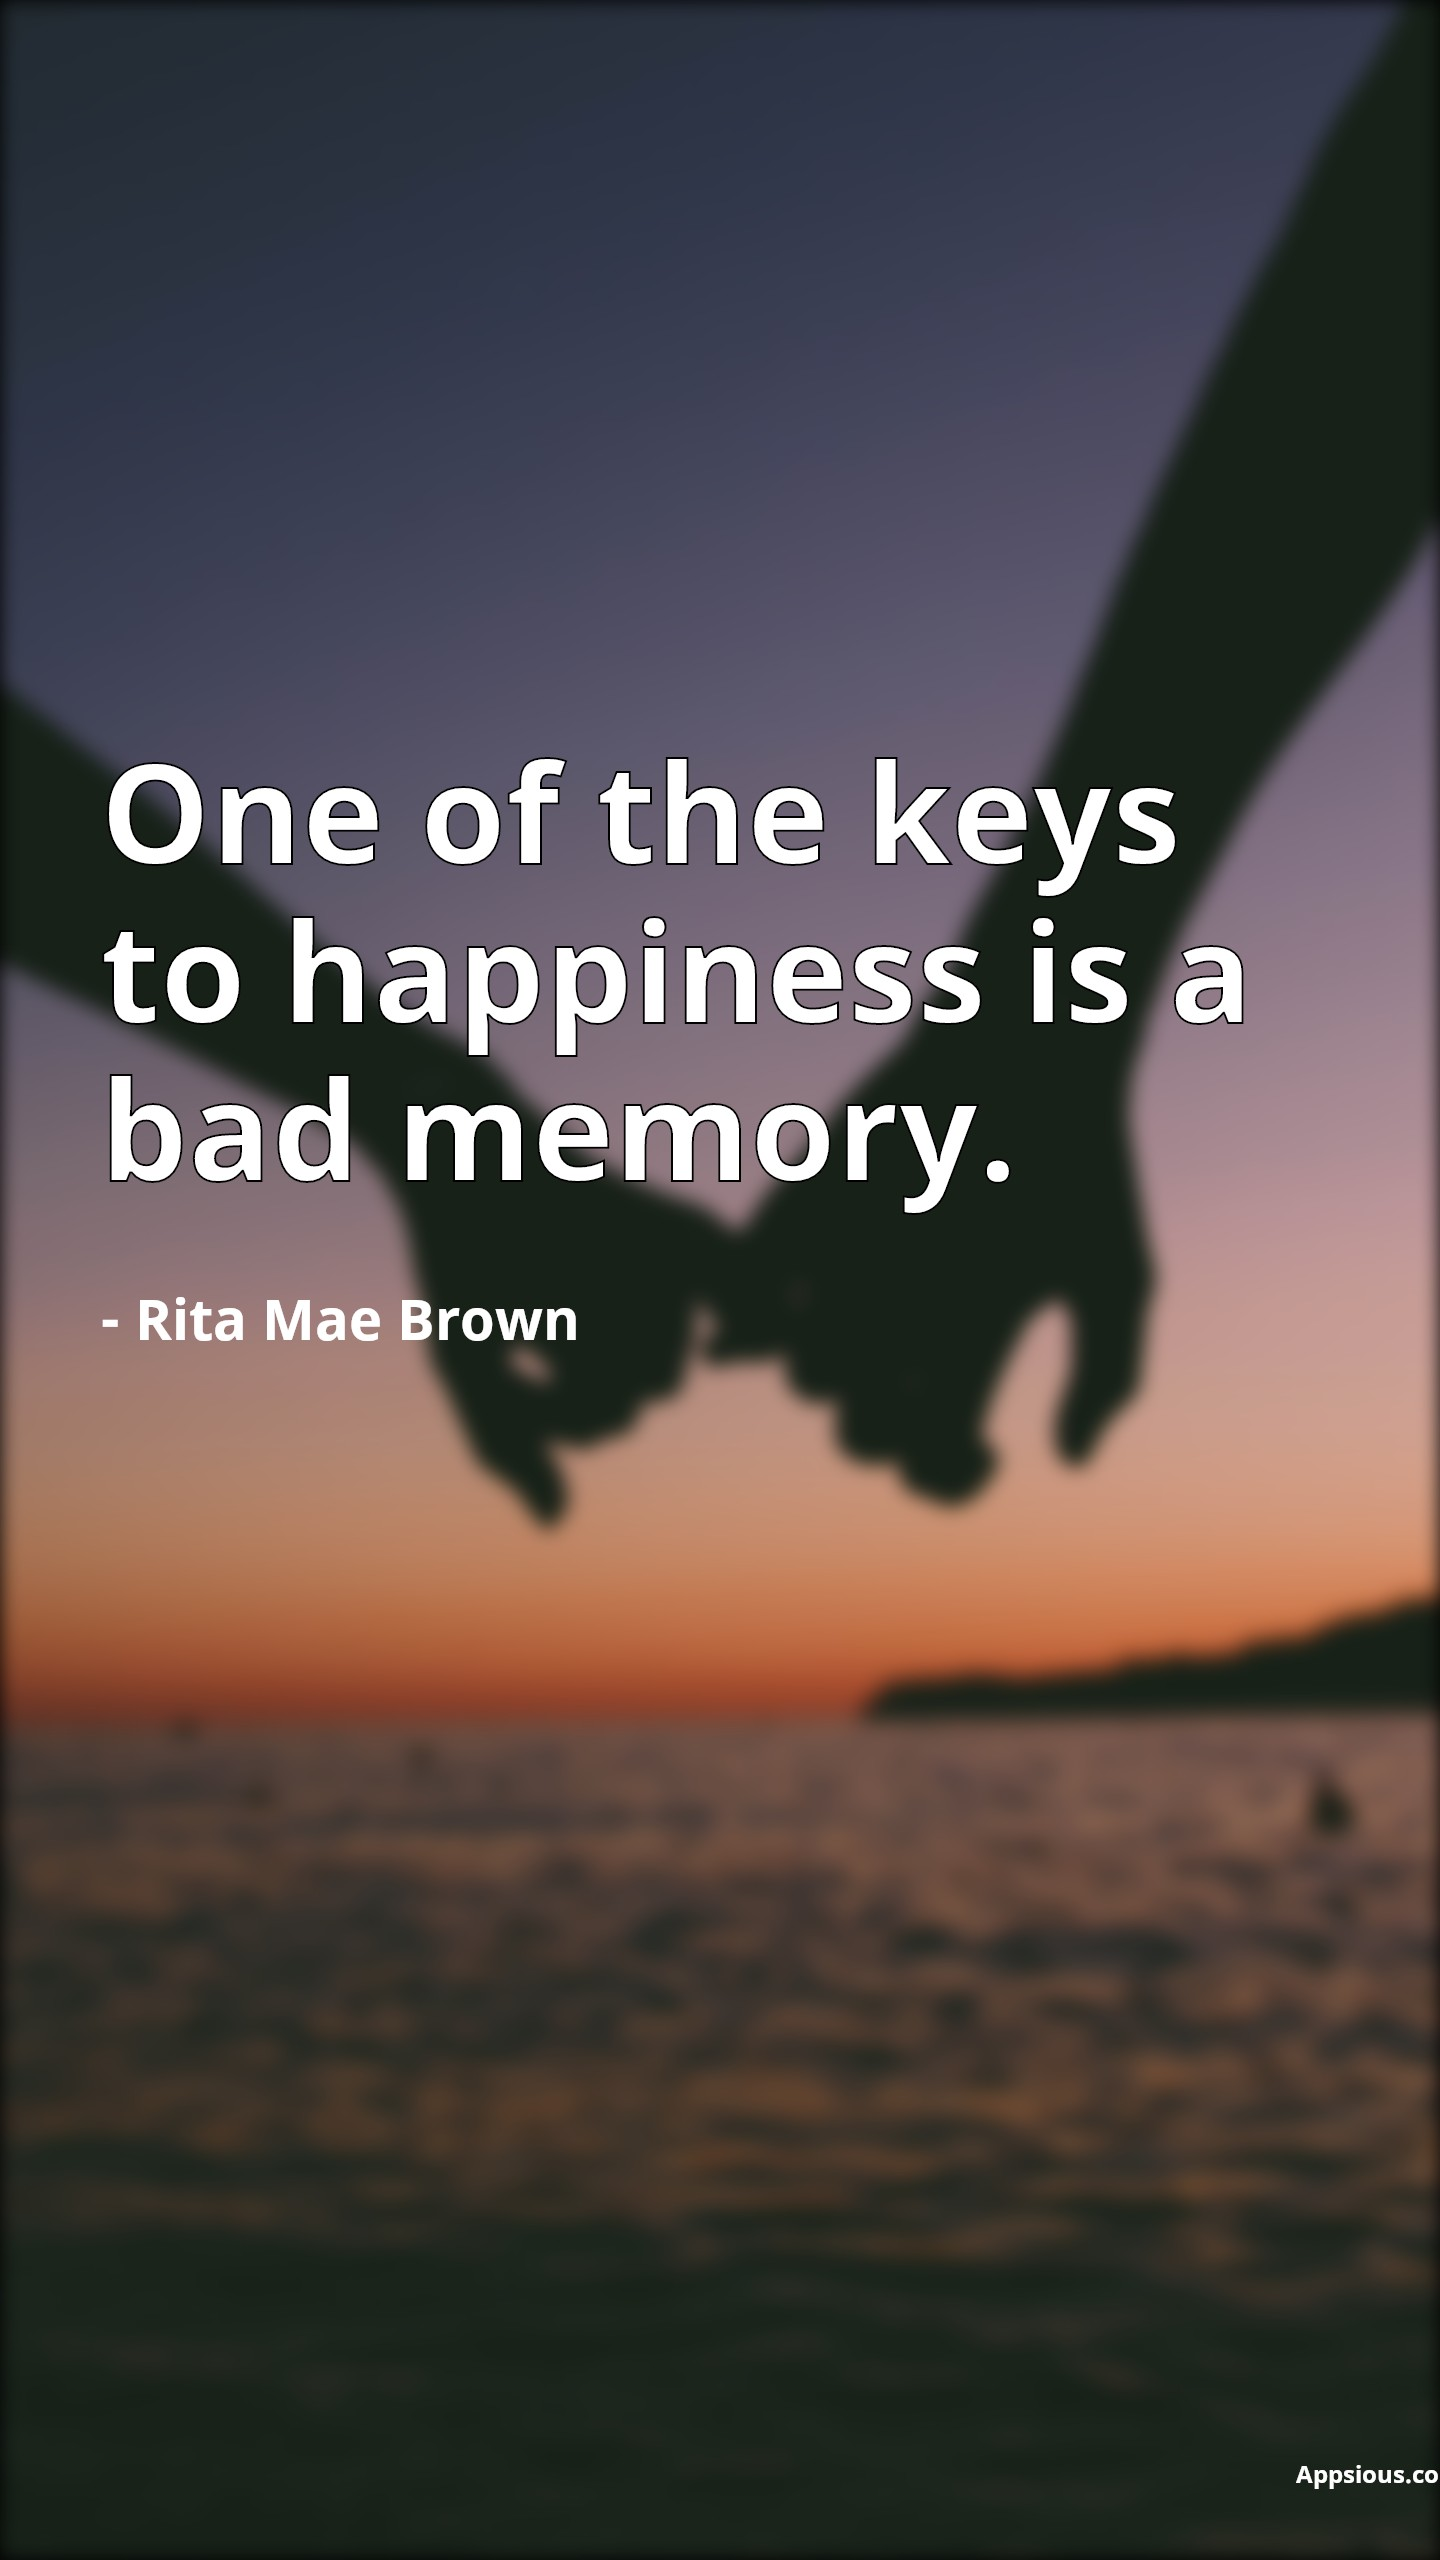 One of the keys to happiness is a bad memory.